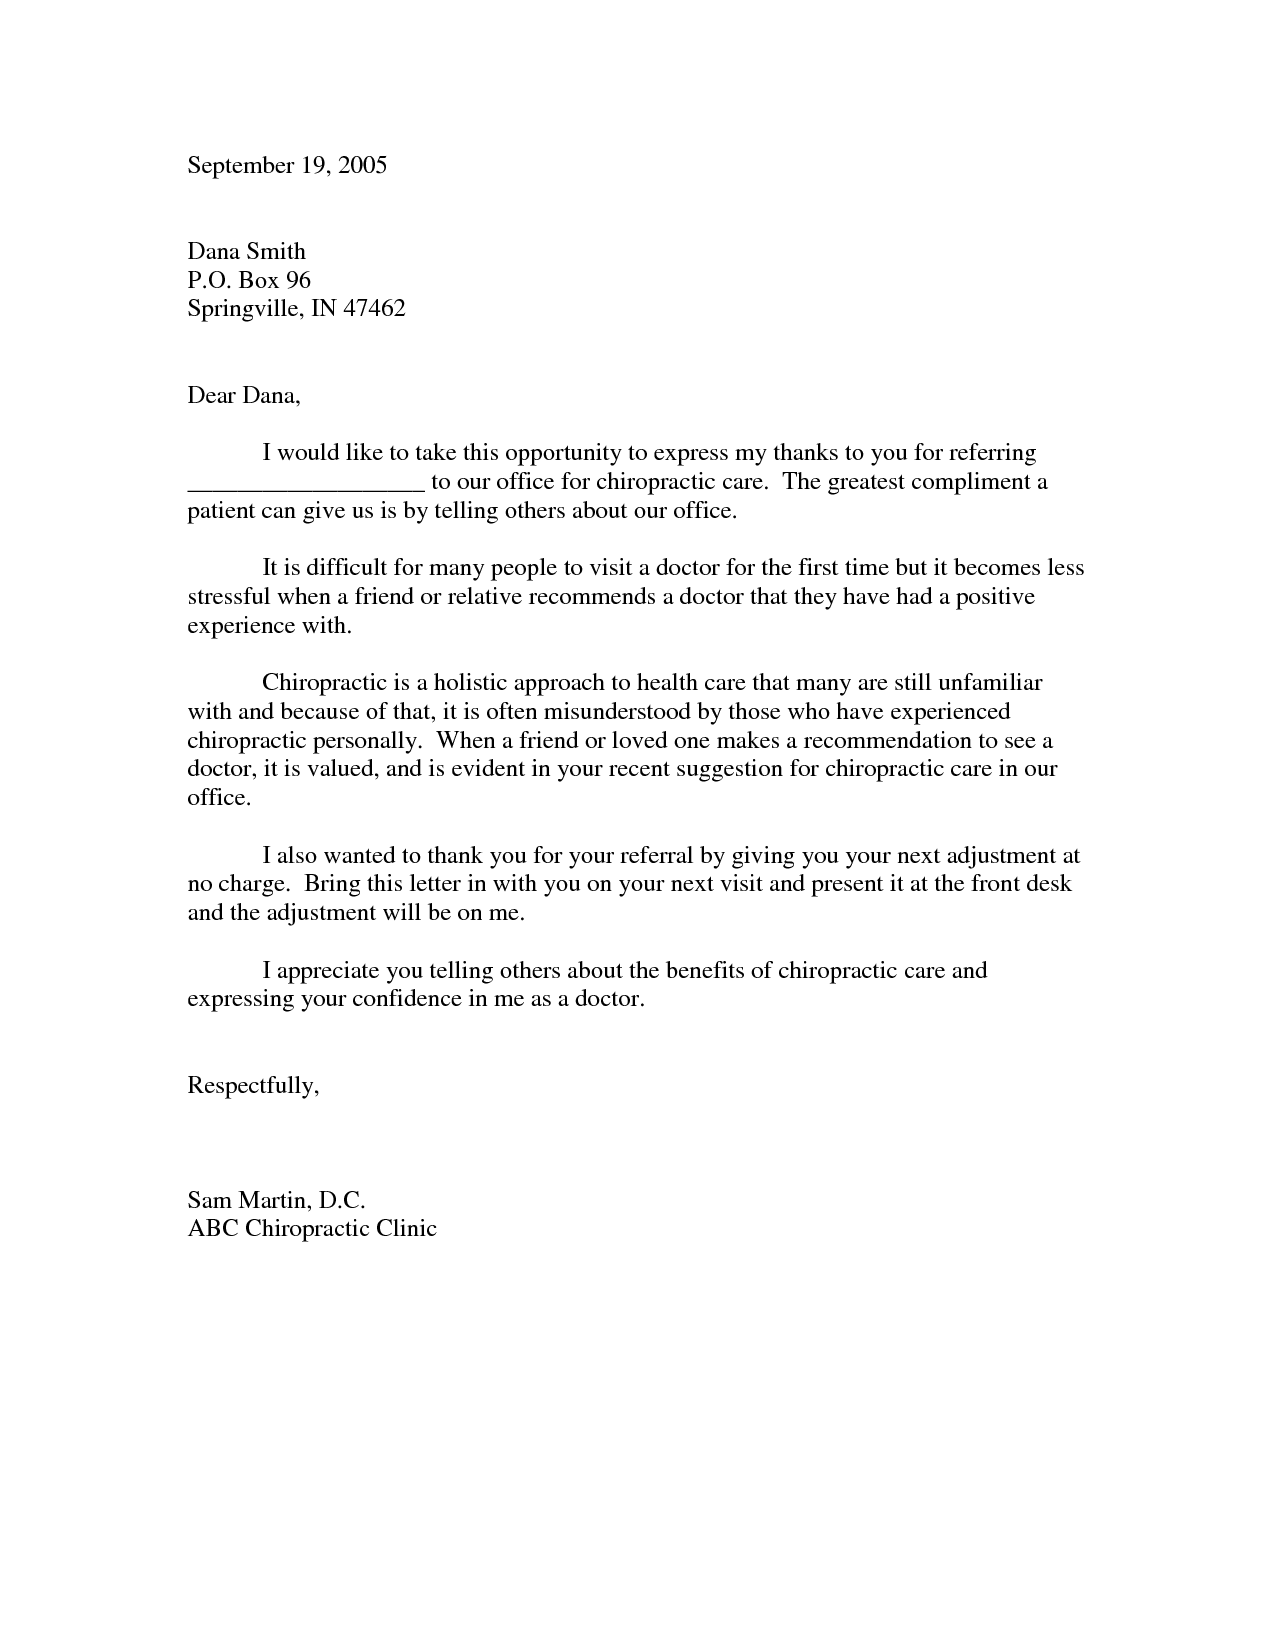 Thank You For Your Referral Letter Gallery Letter Format Formal